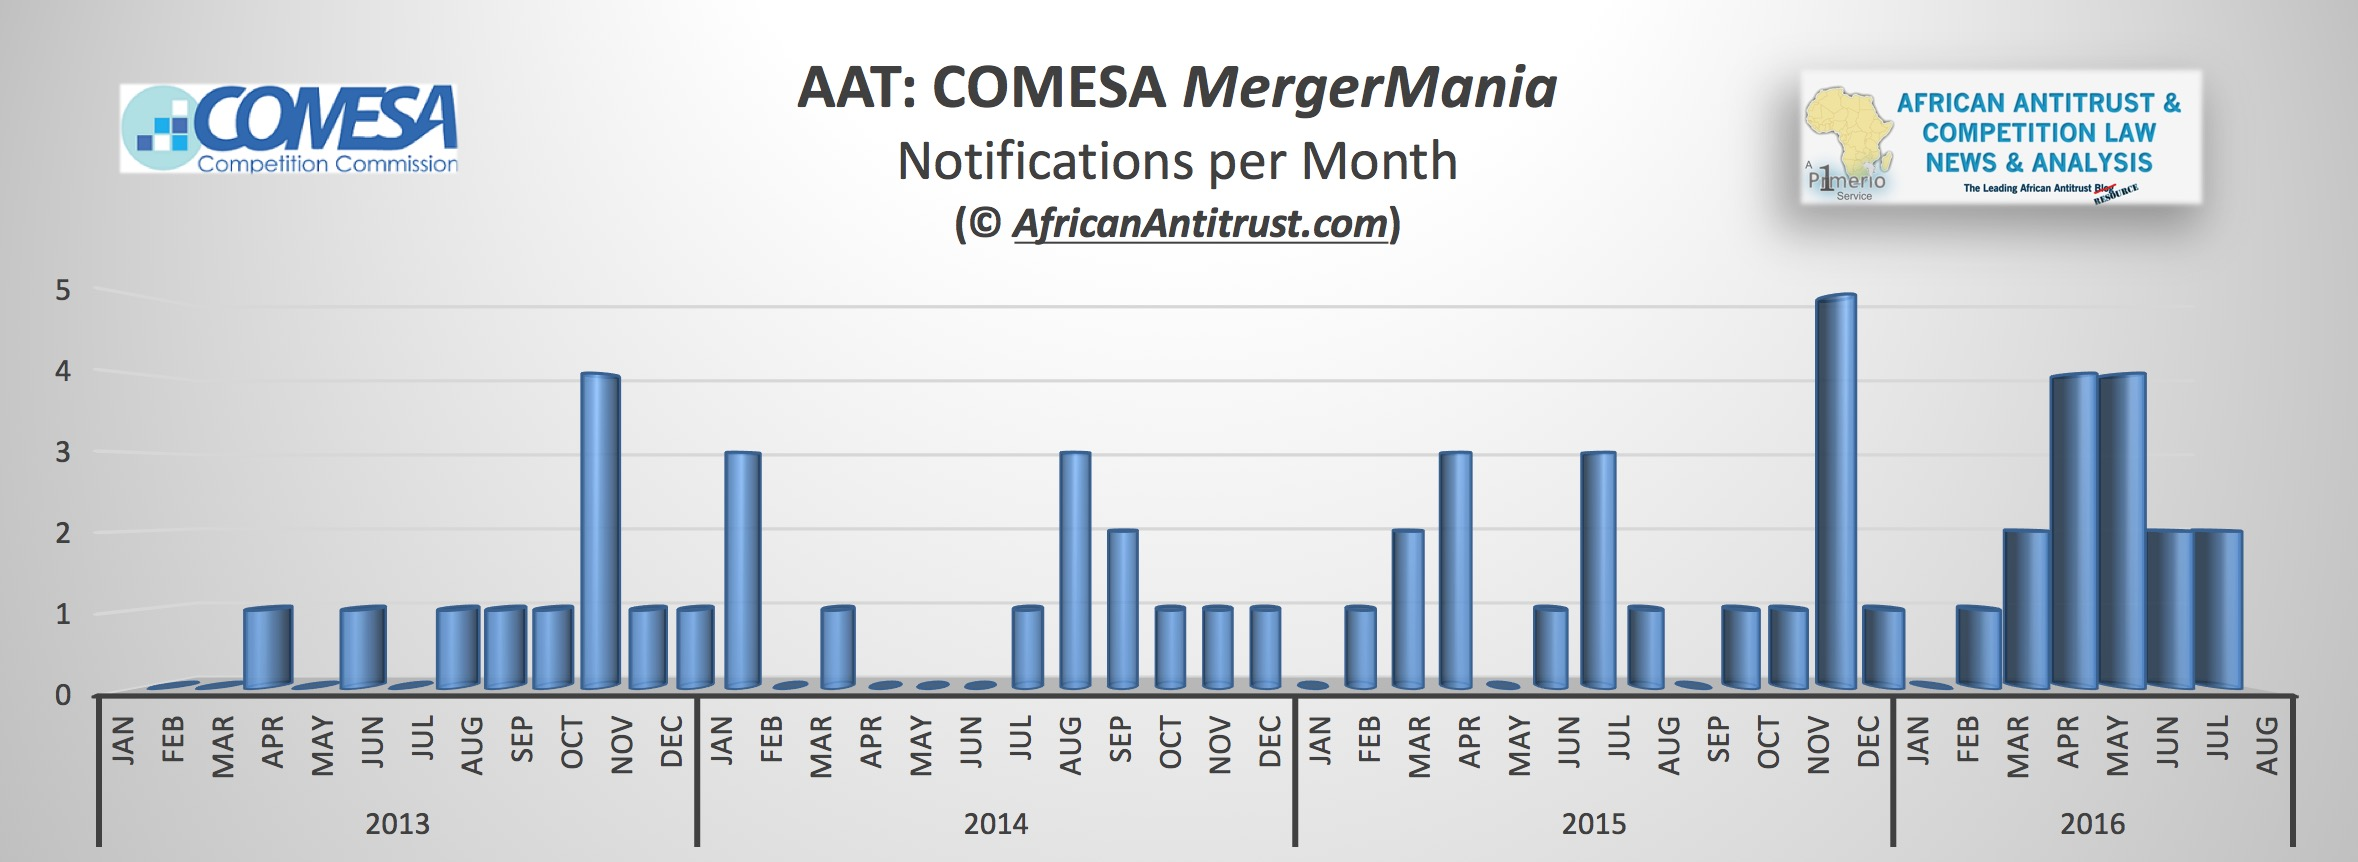 AAT 2016 September mergermania statistics